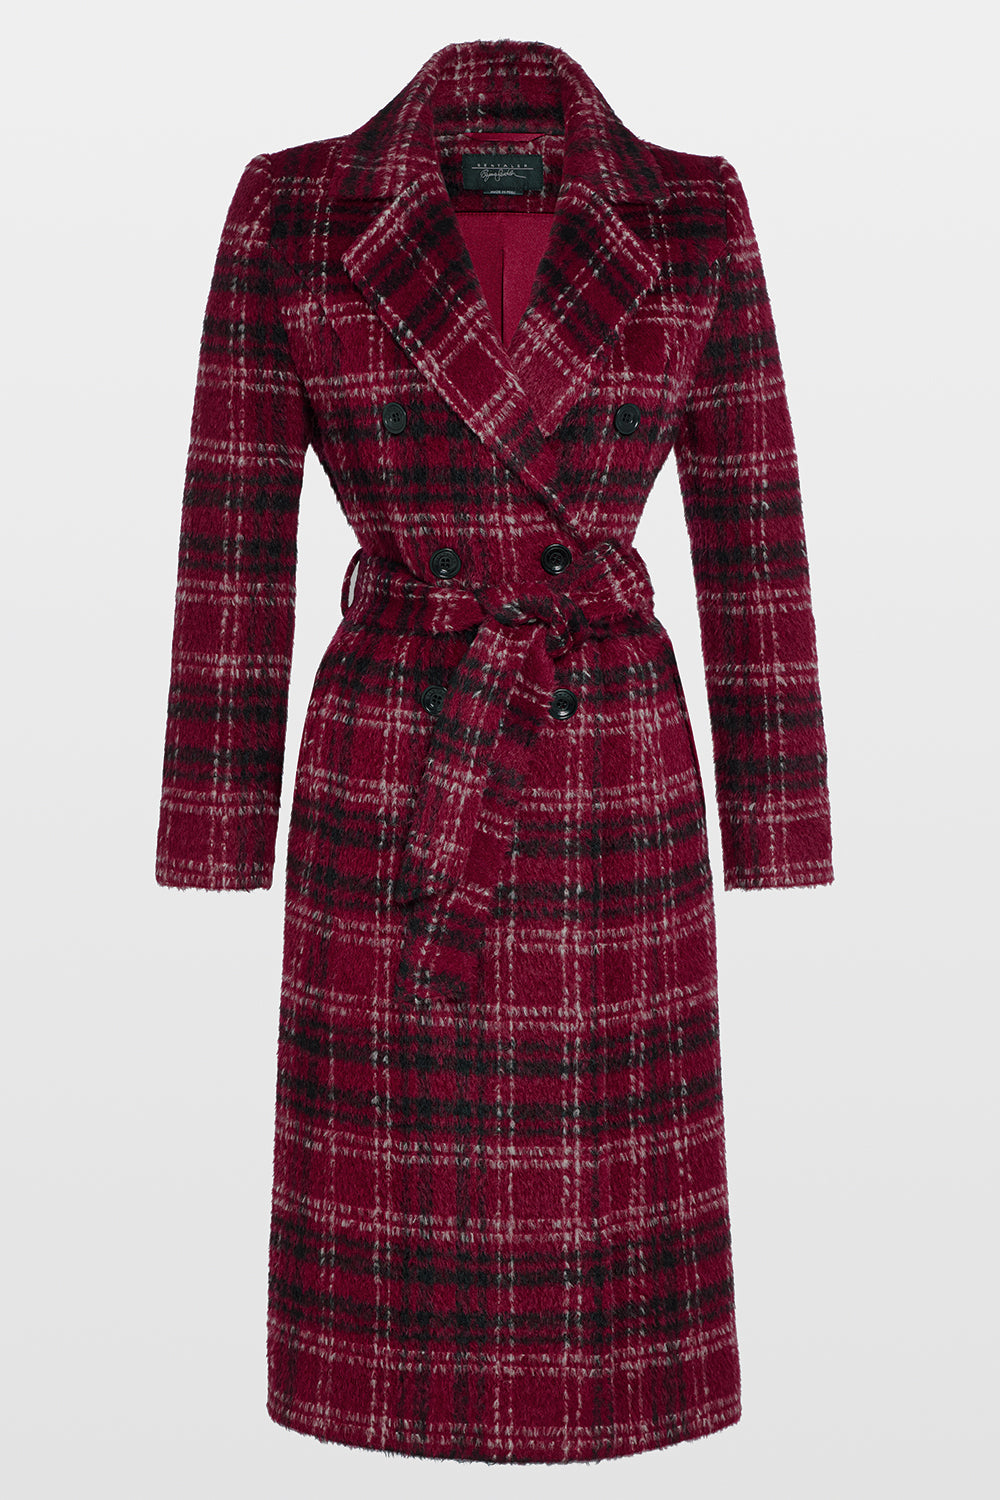 Sentaler Plaid Long Double Breasted Coat featured in Suri Alpaca and available in Garnet Red Plaid. Seen off model.